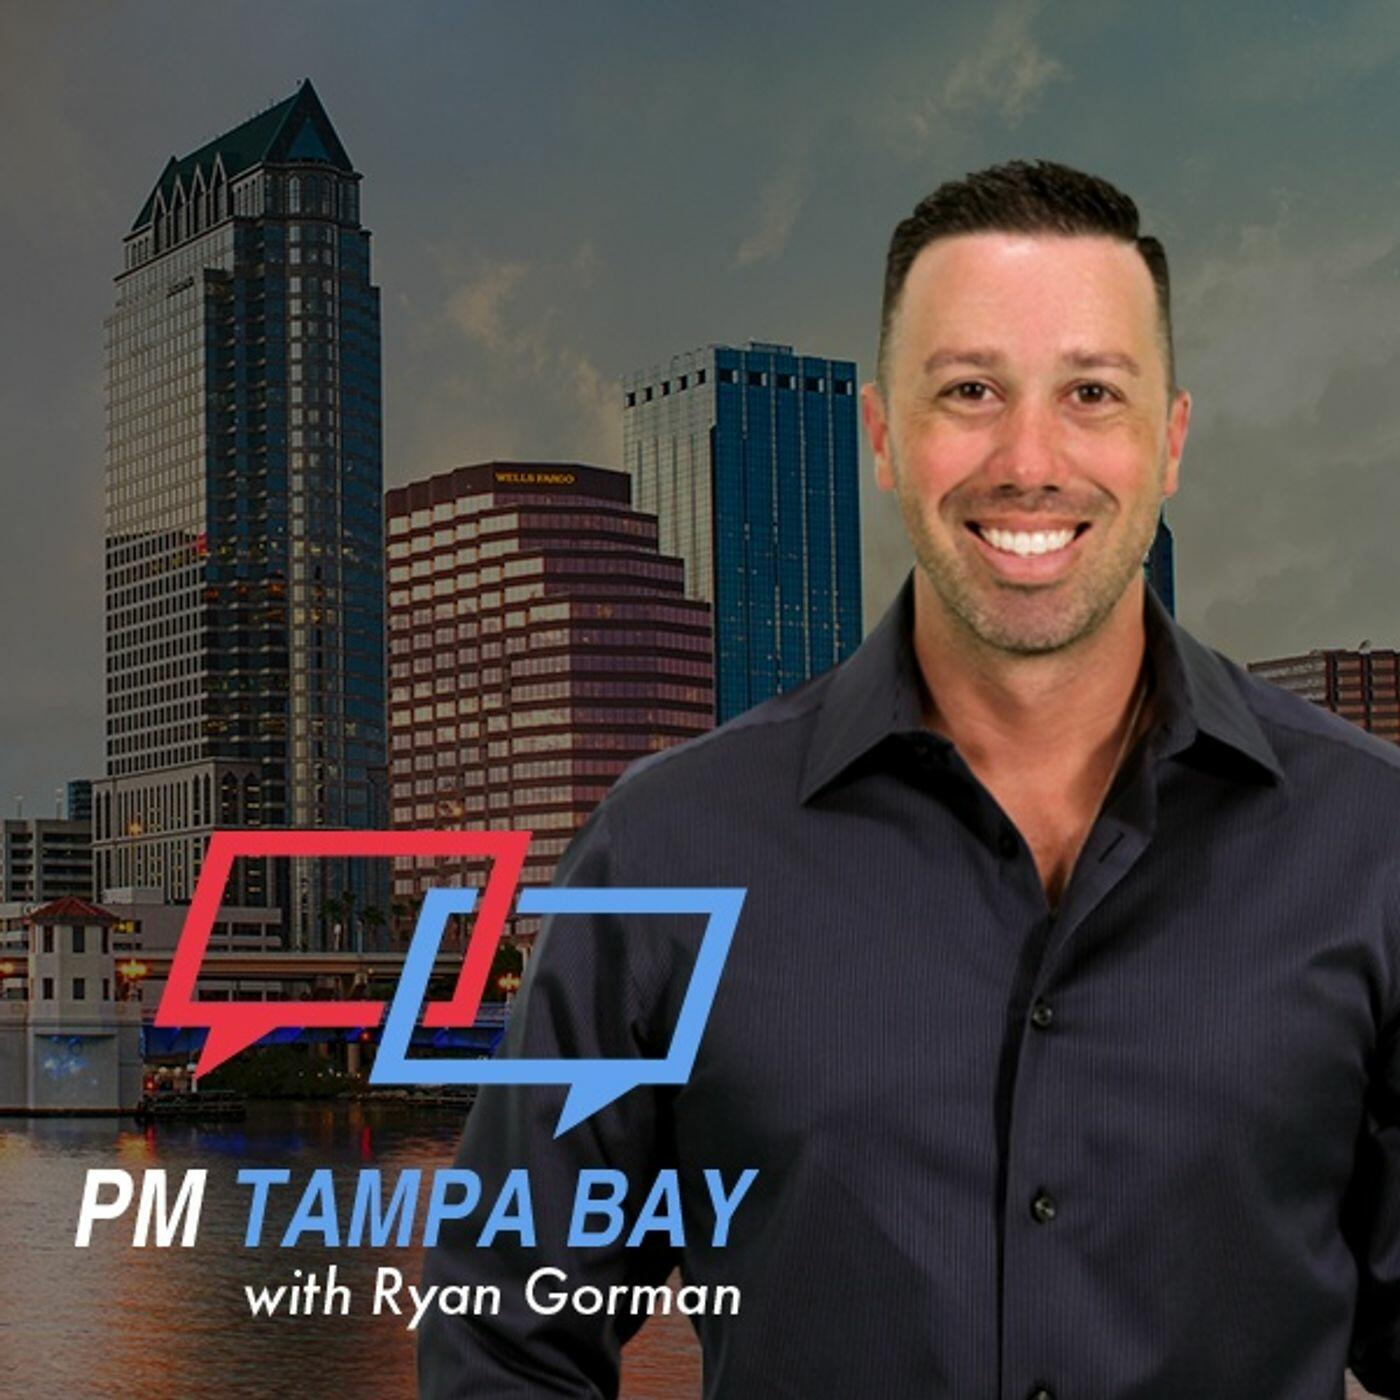 Listen to the PM Tampa Bay with Ryan Gorman Episode - Show Open: Interview With U.S. Small Business Administrator Jovita Carranza on iHeartRadio | iHeartRadio